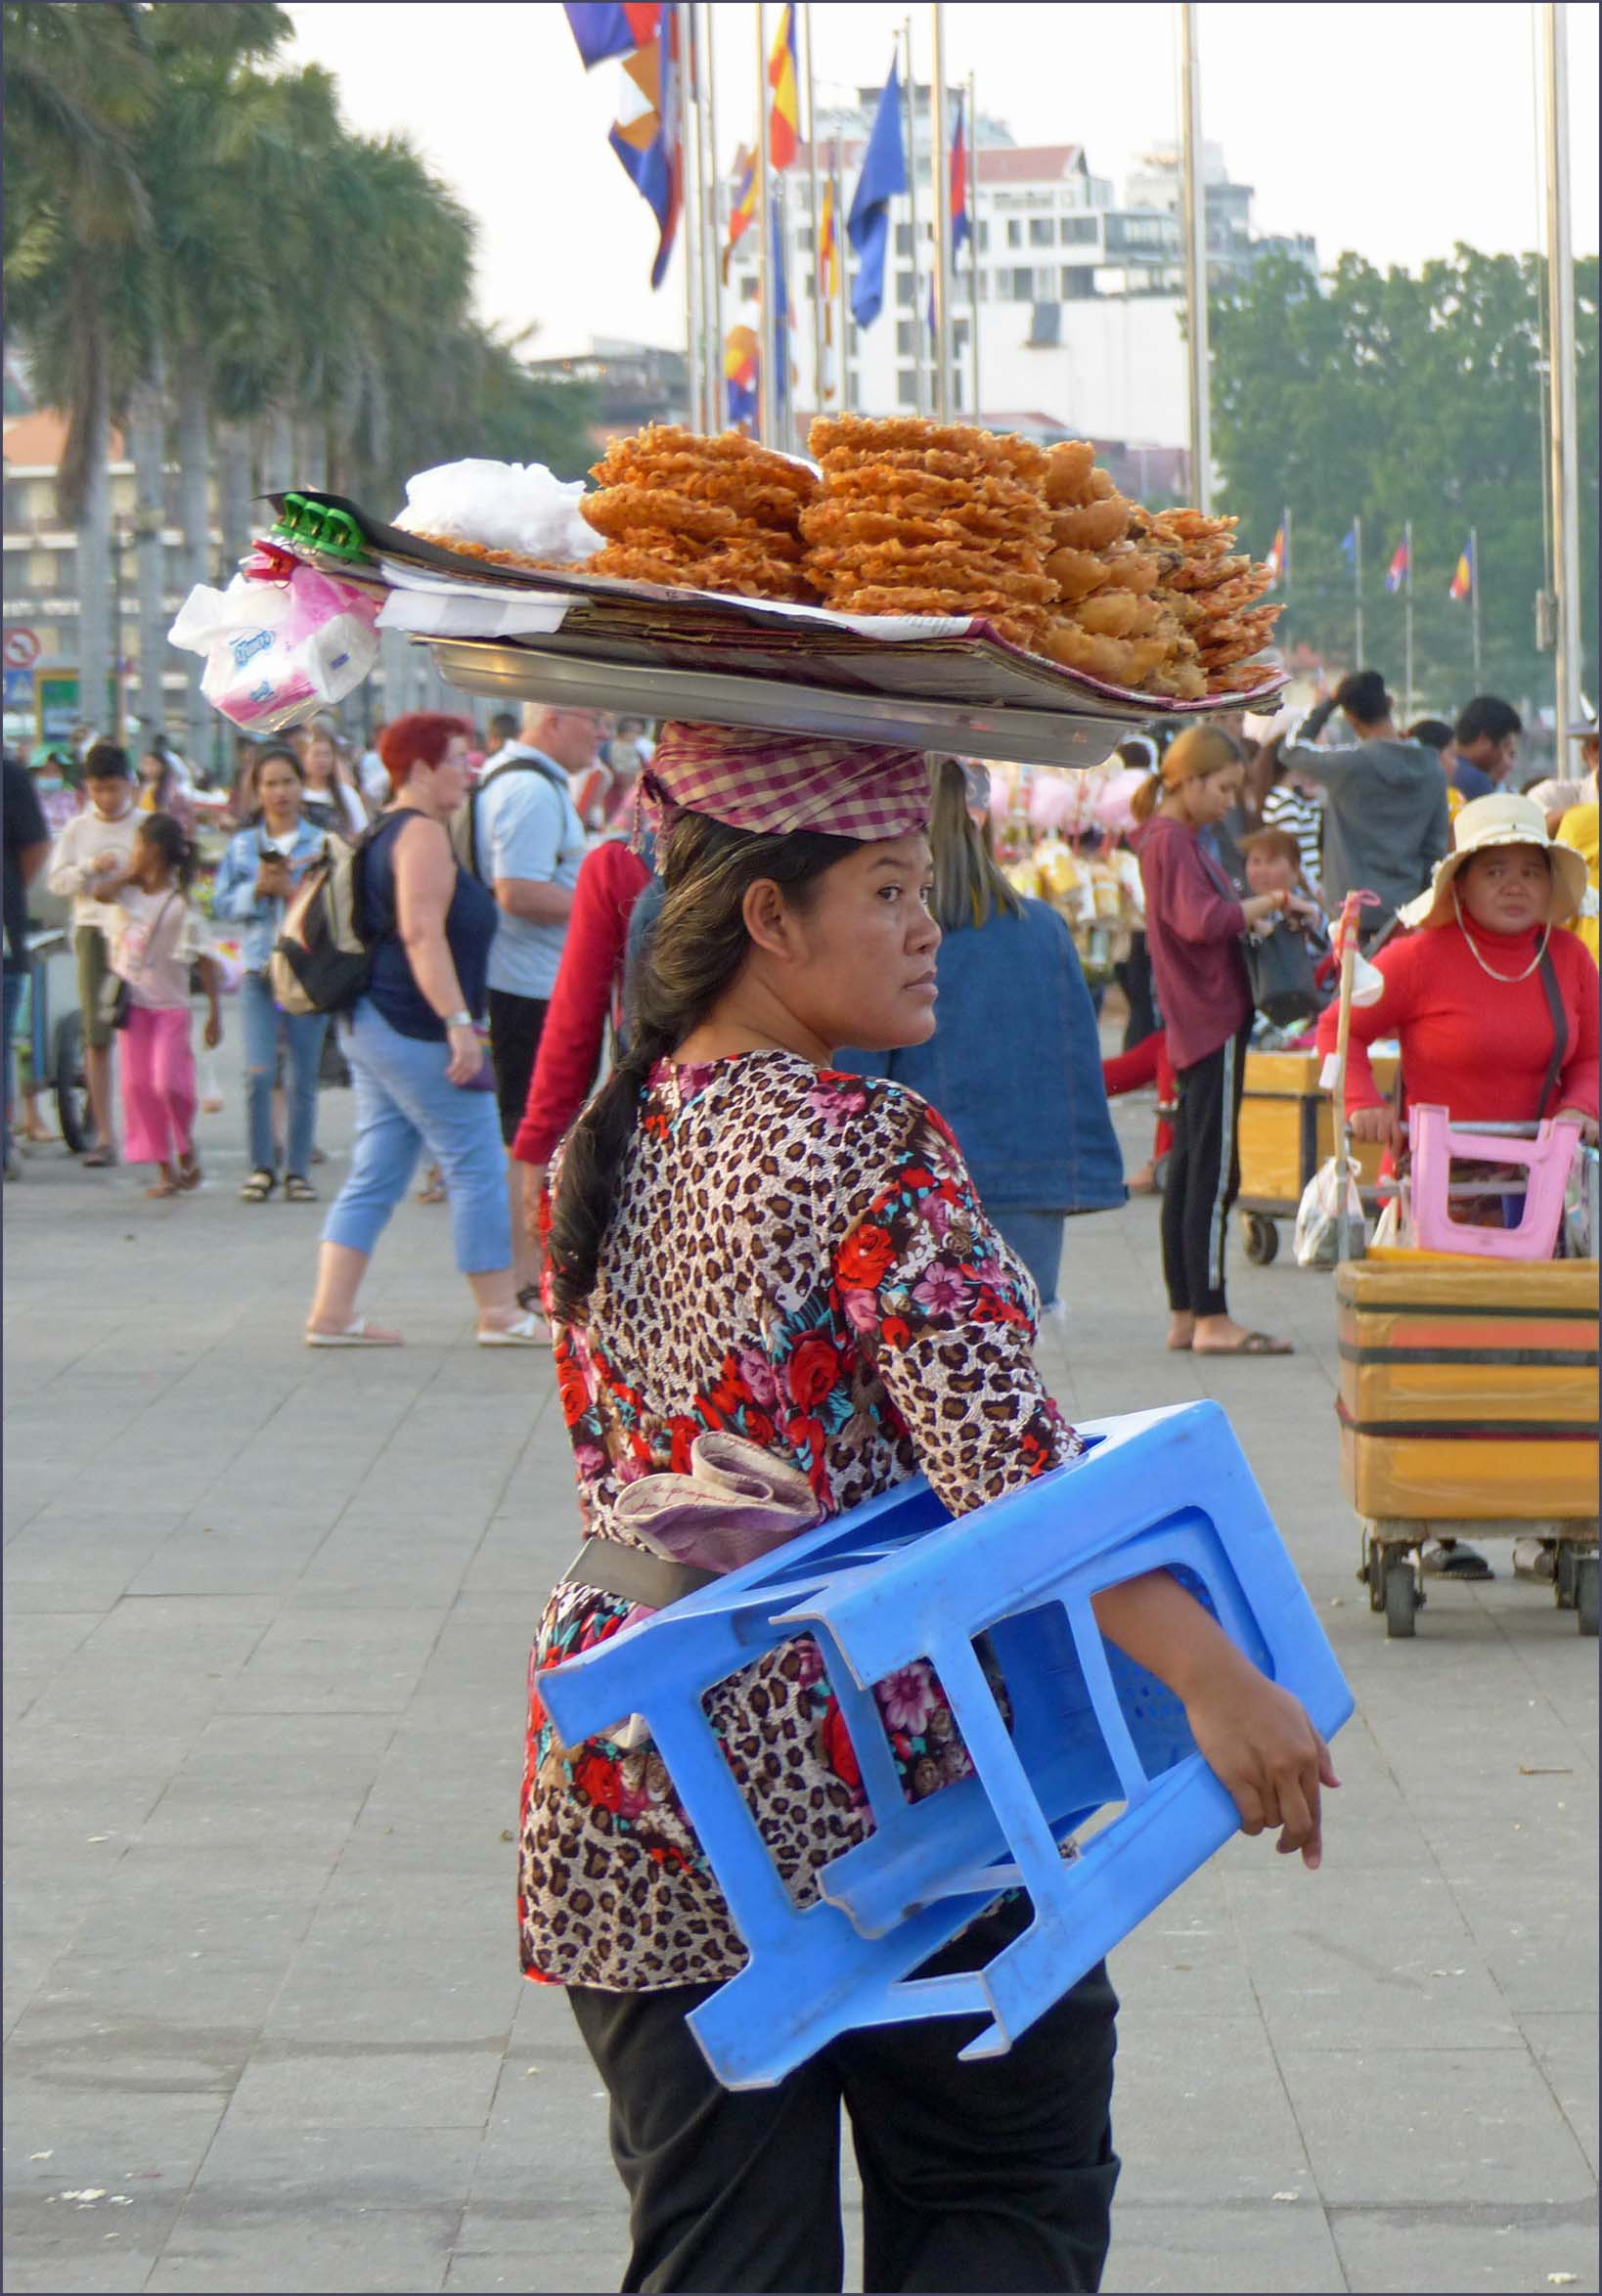 Woman with tray of food on her head